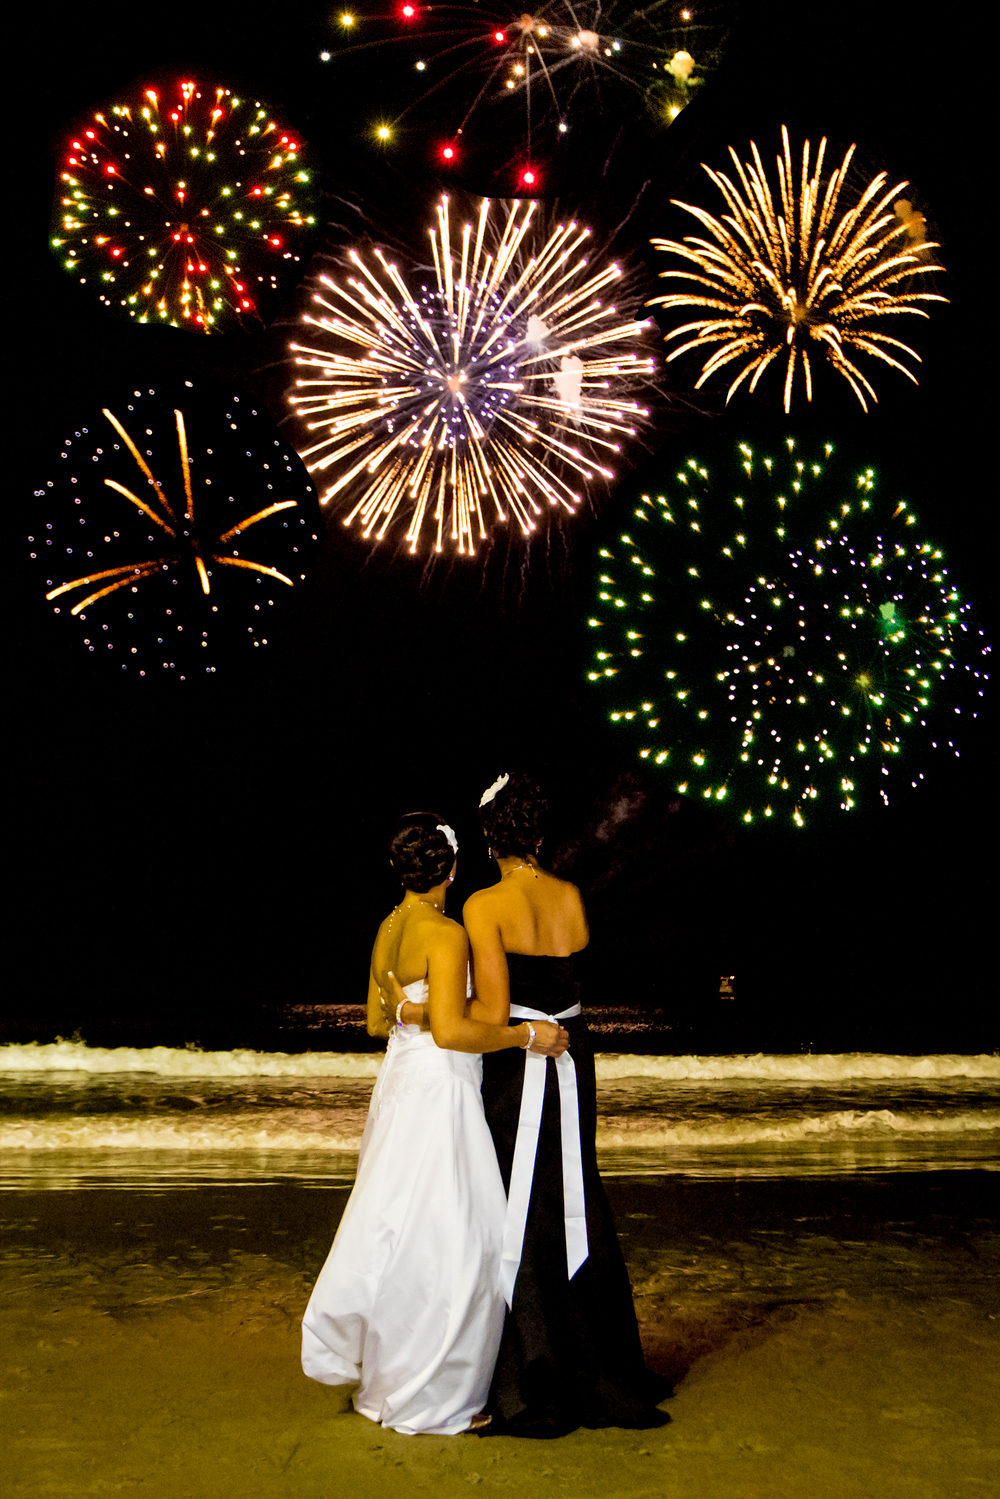 wedding fireworks love beach salisbury ma .jpg